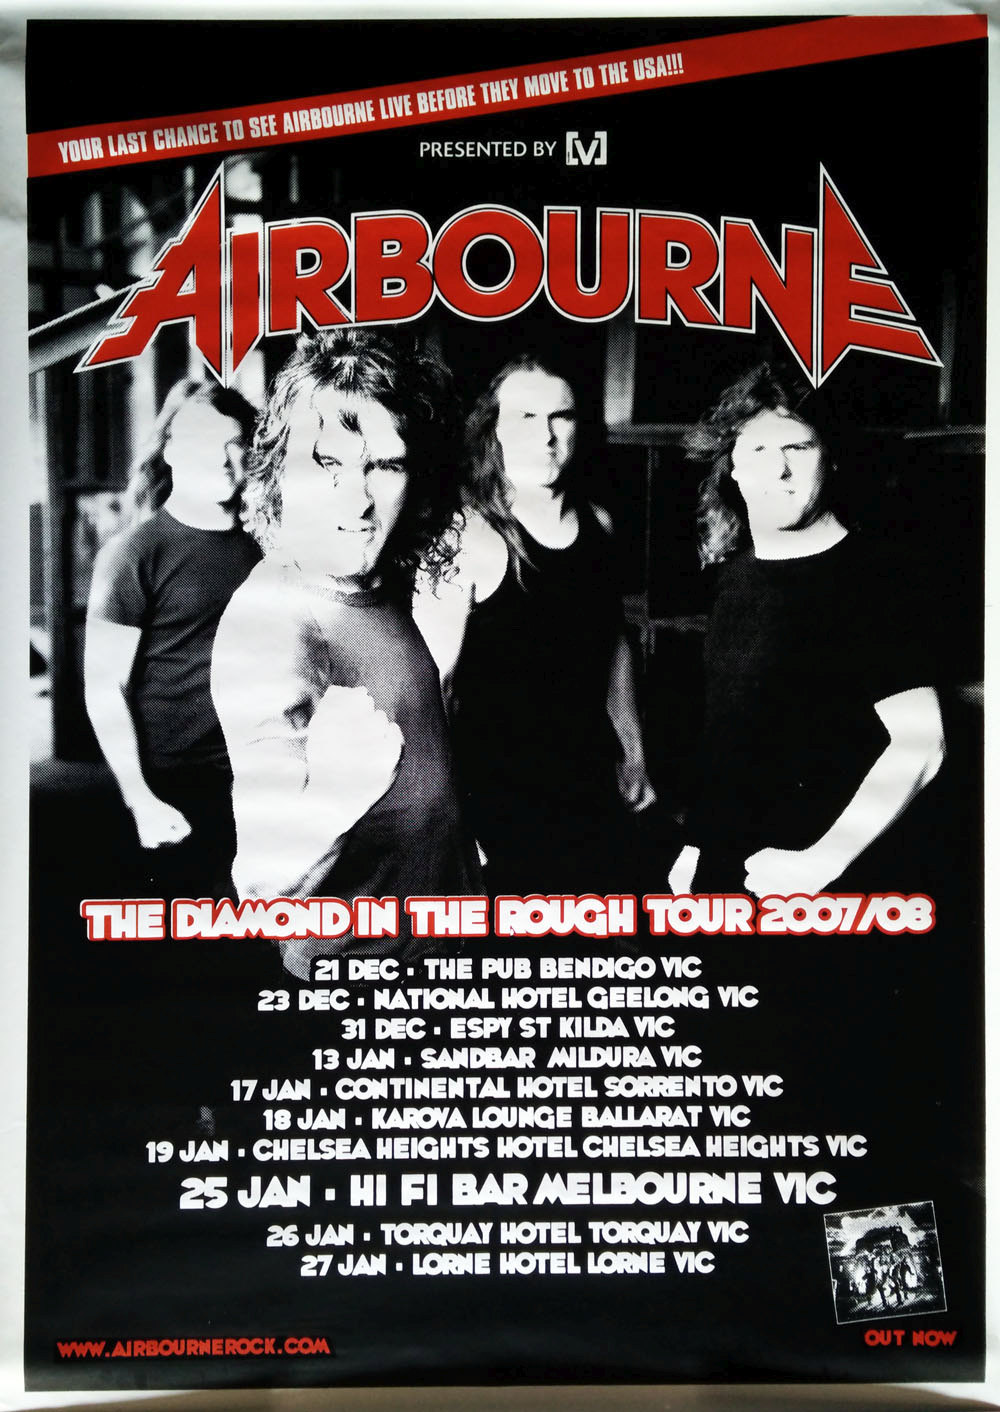 AIRBOURNE - The Diamond In The Rough 2007/08 Australian Tour - 1